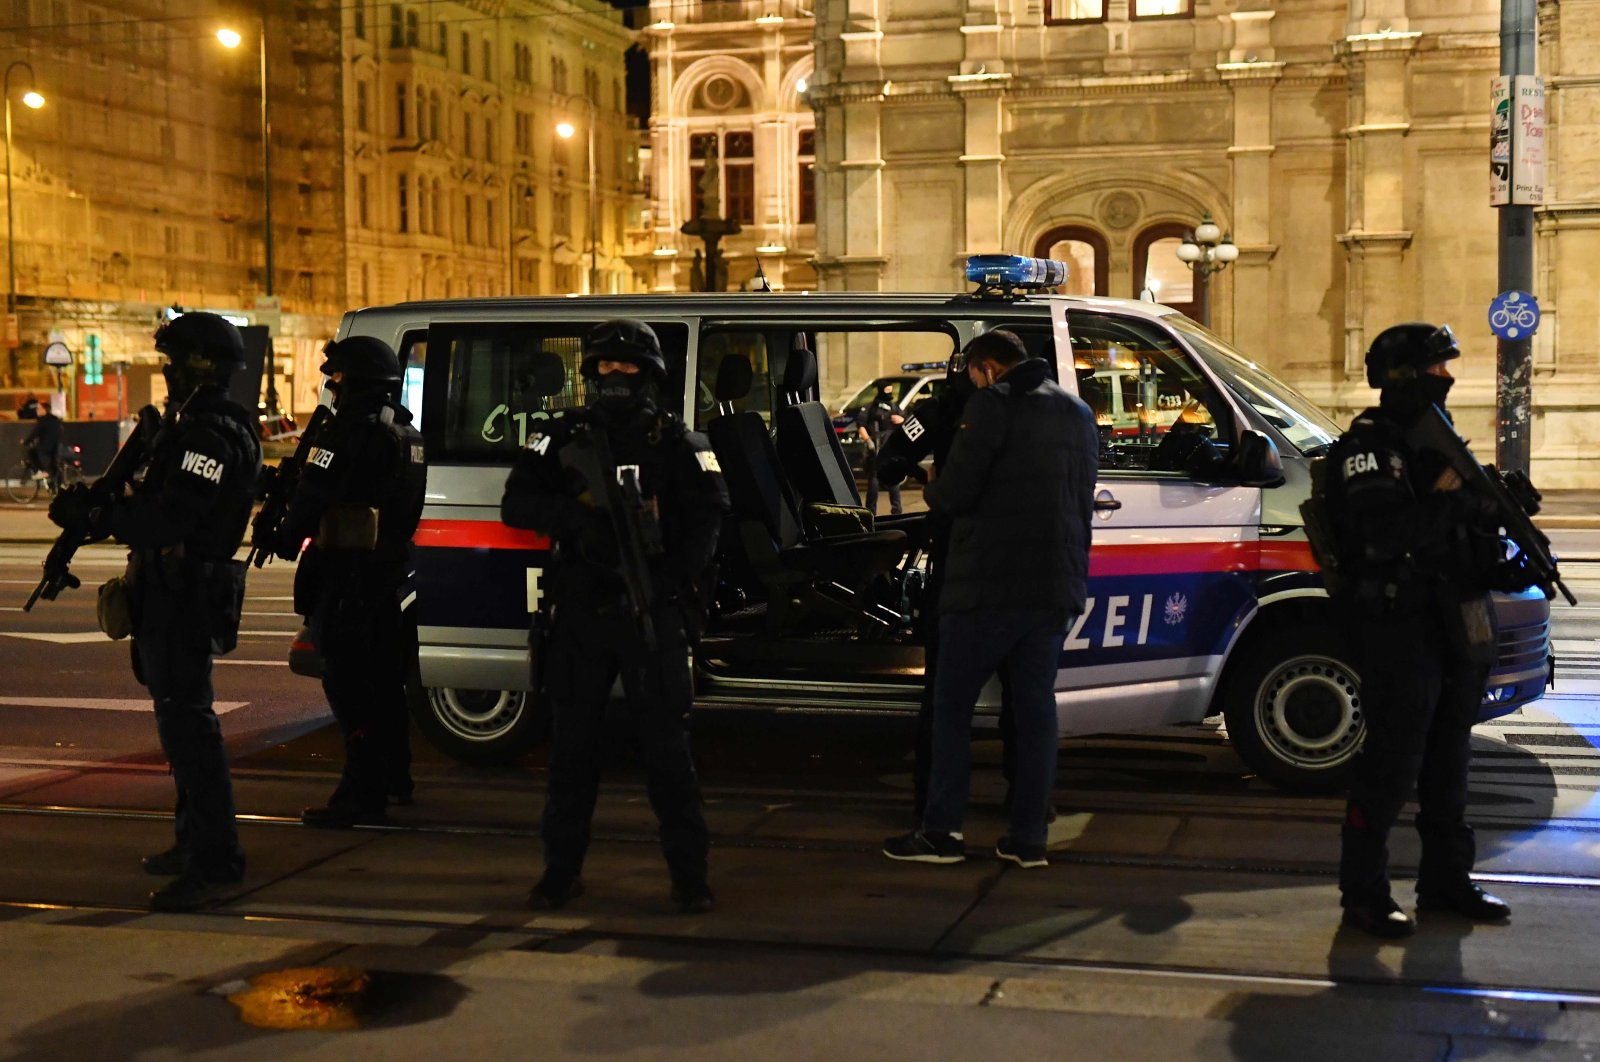 Armed police officers stand outside of a police vehicle near the State Opera in the center of Vienna following a terror attack, Nov. 2, 2020. (AFP Photo)